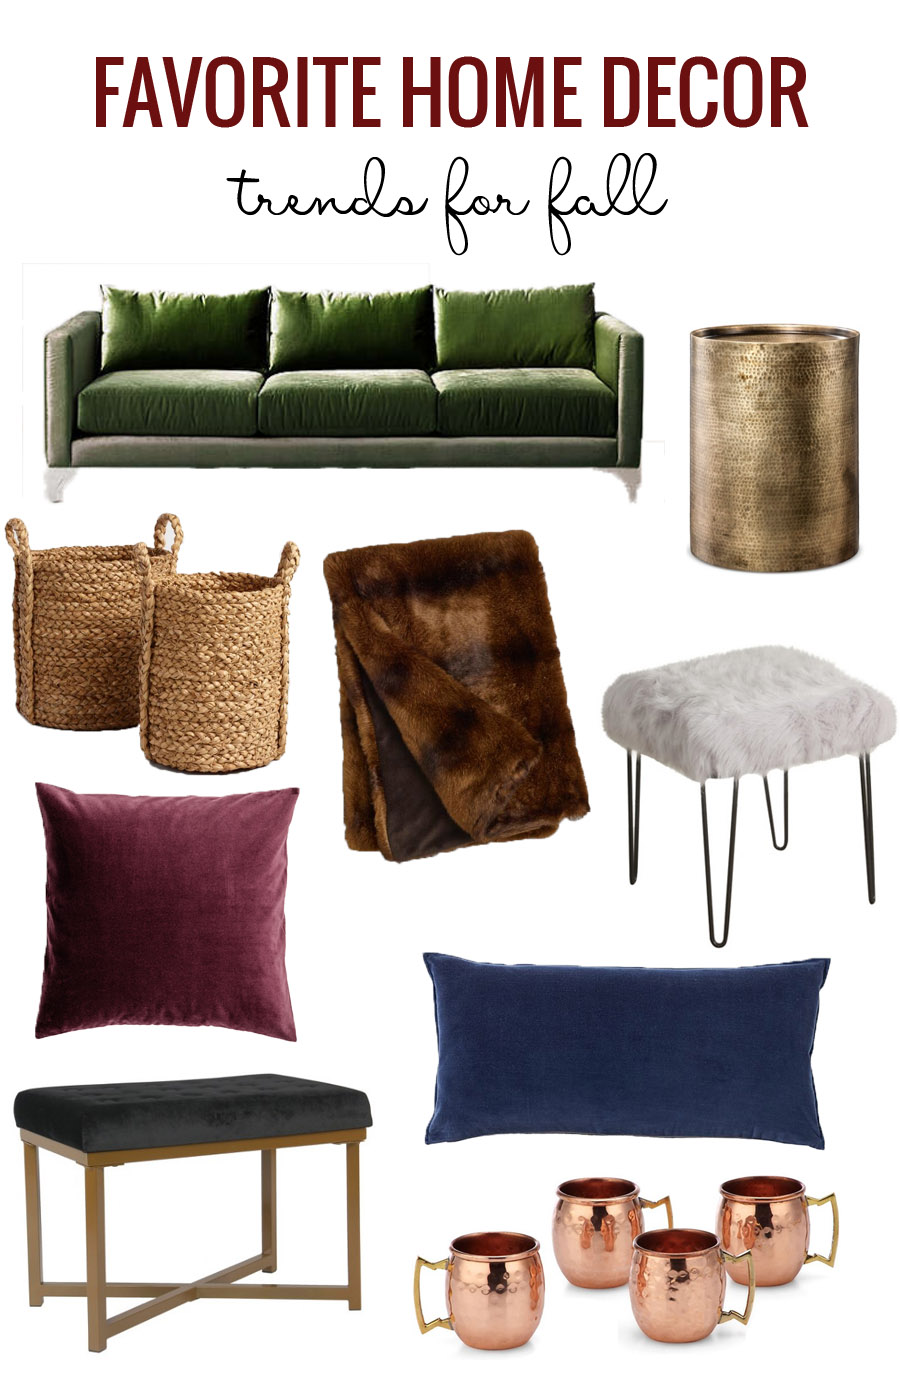 Favorite Home Decor Fall Trends featured on Remodelaholic.com